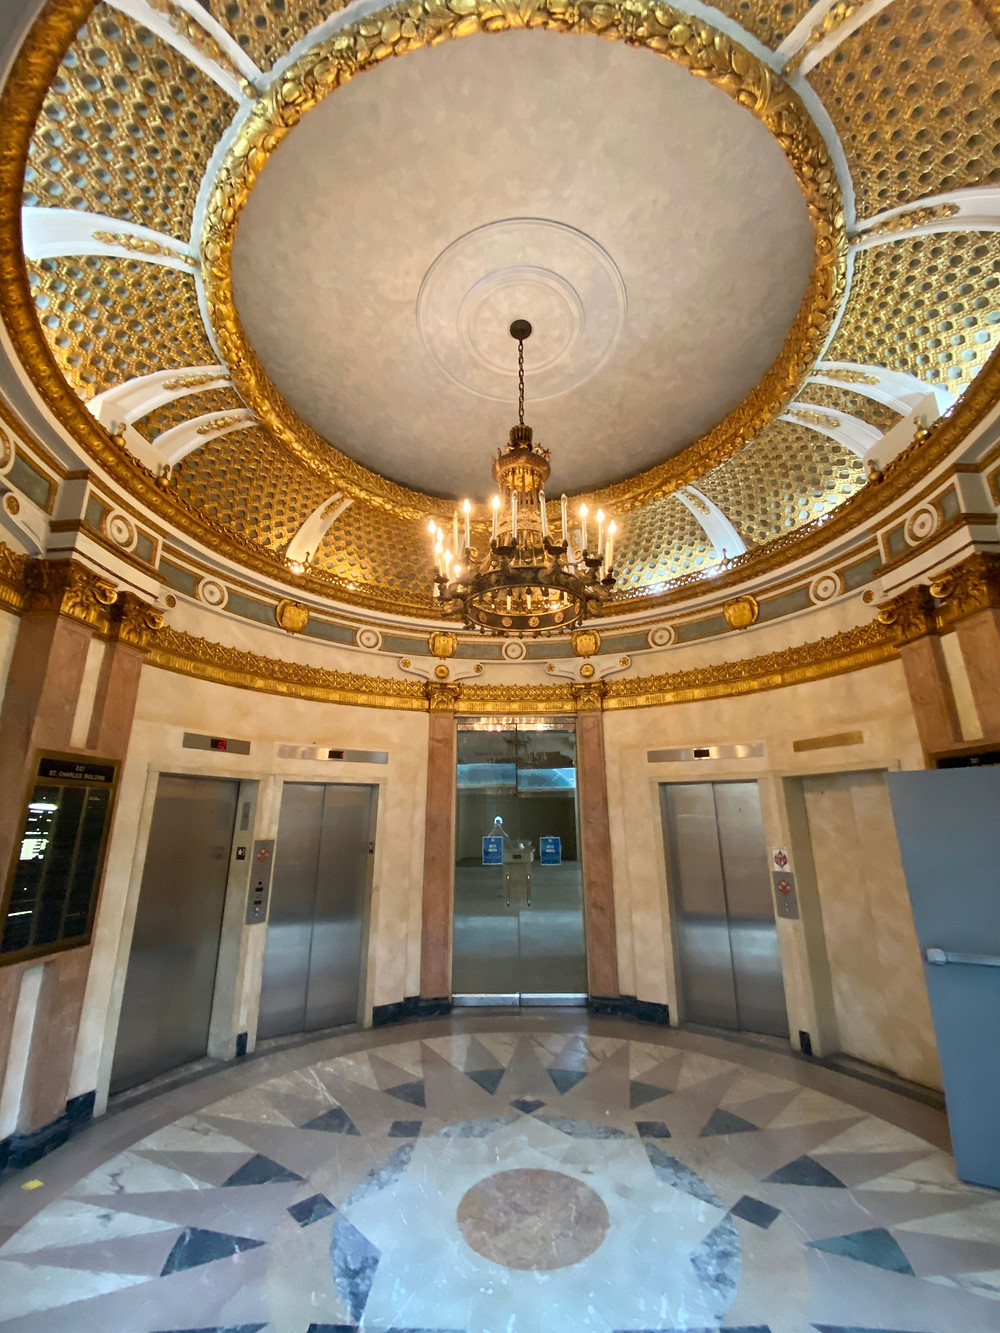 Image of lobby entrance at 321 St. Charles Avenue, thought to be original to the building's construction in 1920